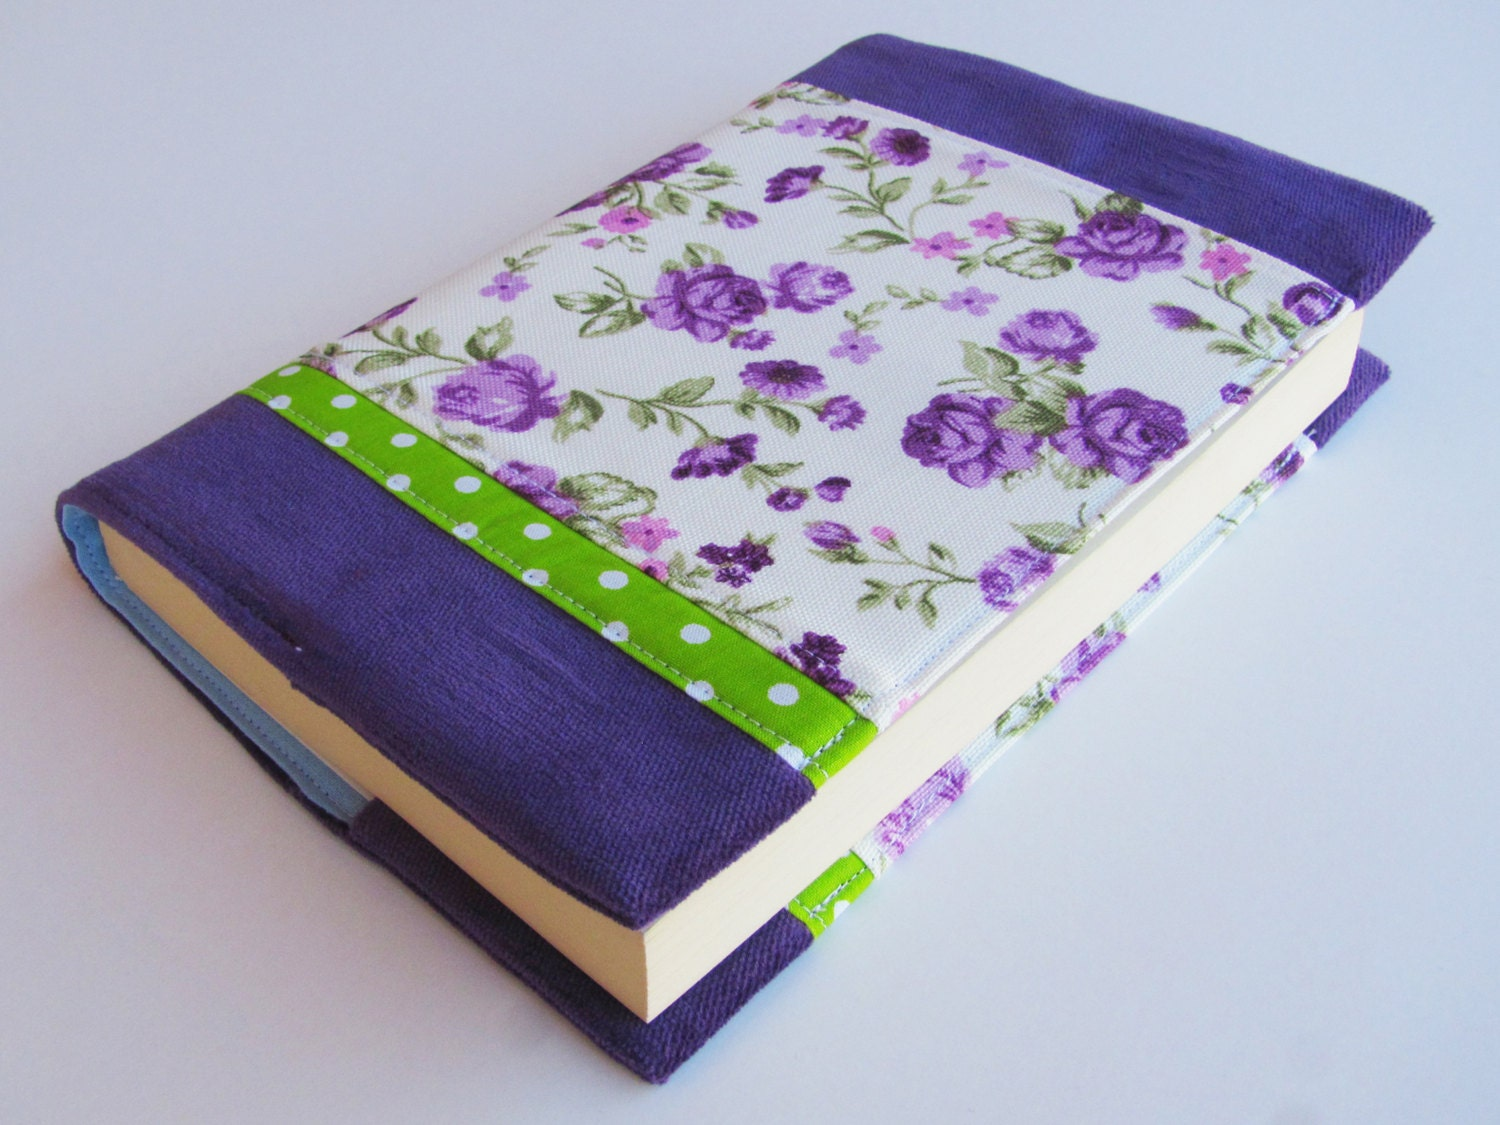 Cloth Book Covers For Textbooks ~ Floral fabric book cover paperback for mass market